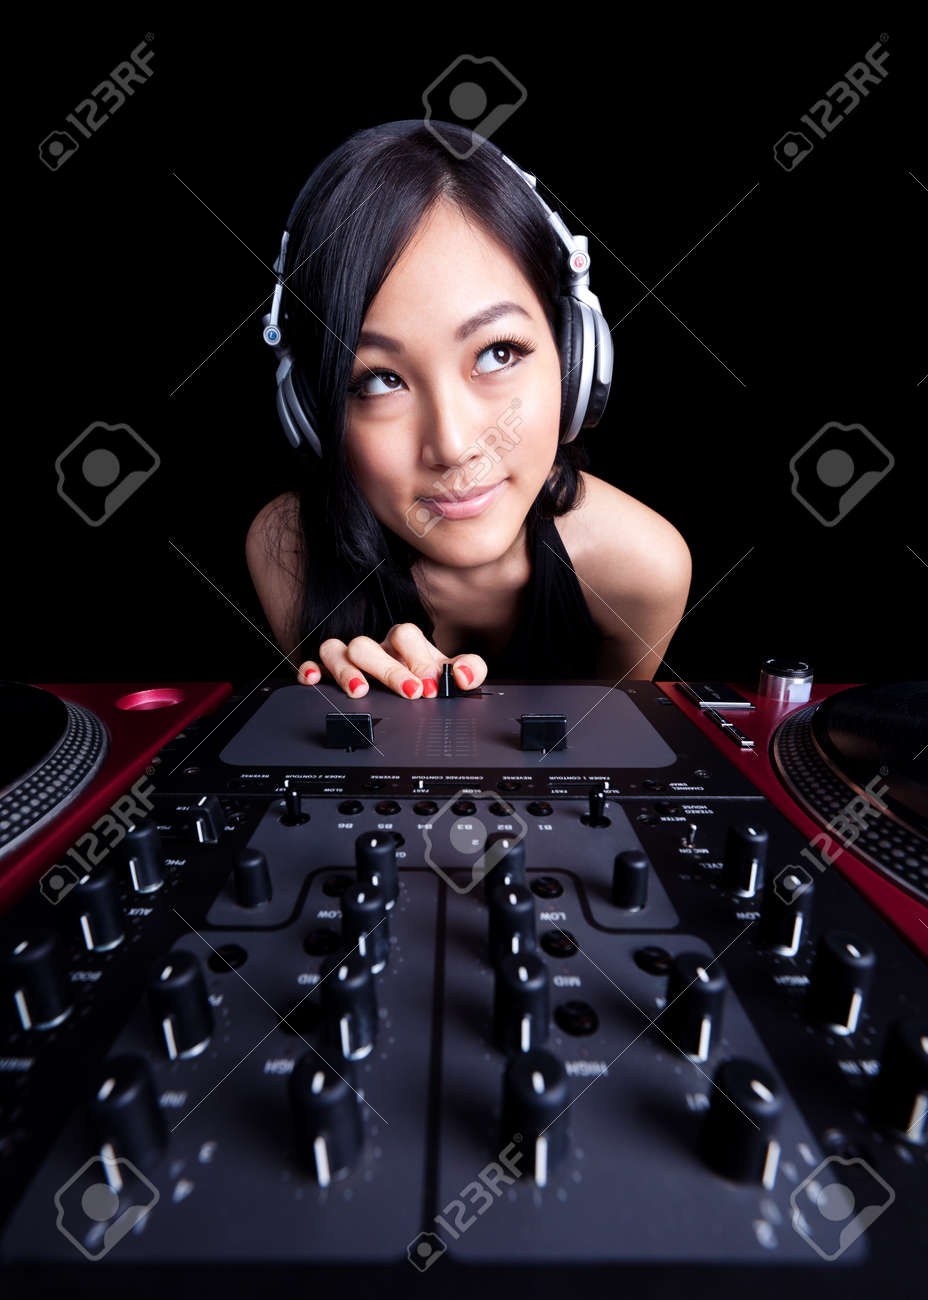 Wide angle shot of a female DJ using the fader. Stock Photo - 9591290